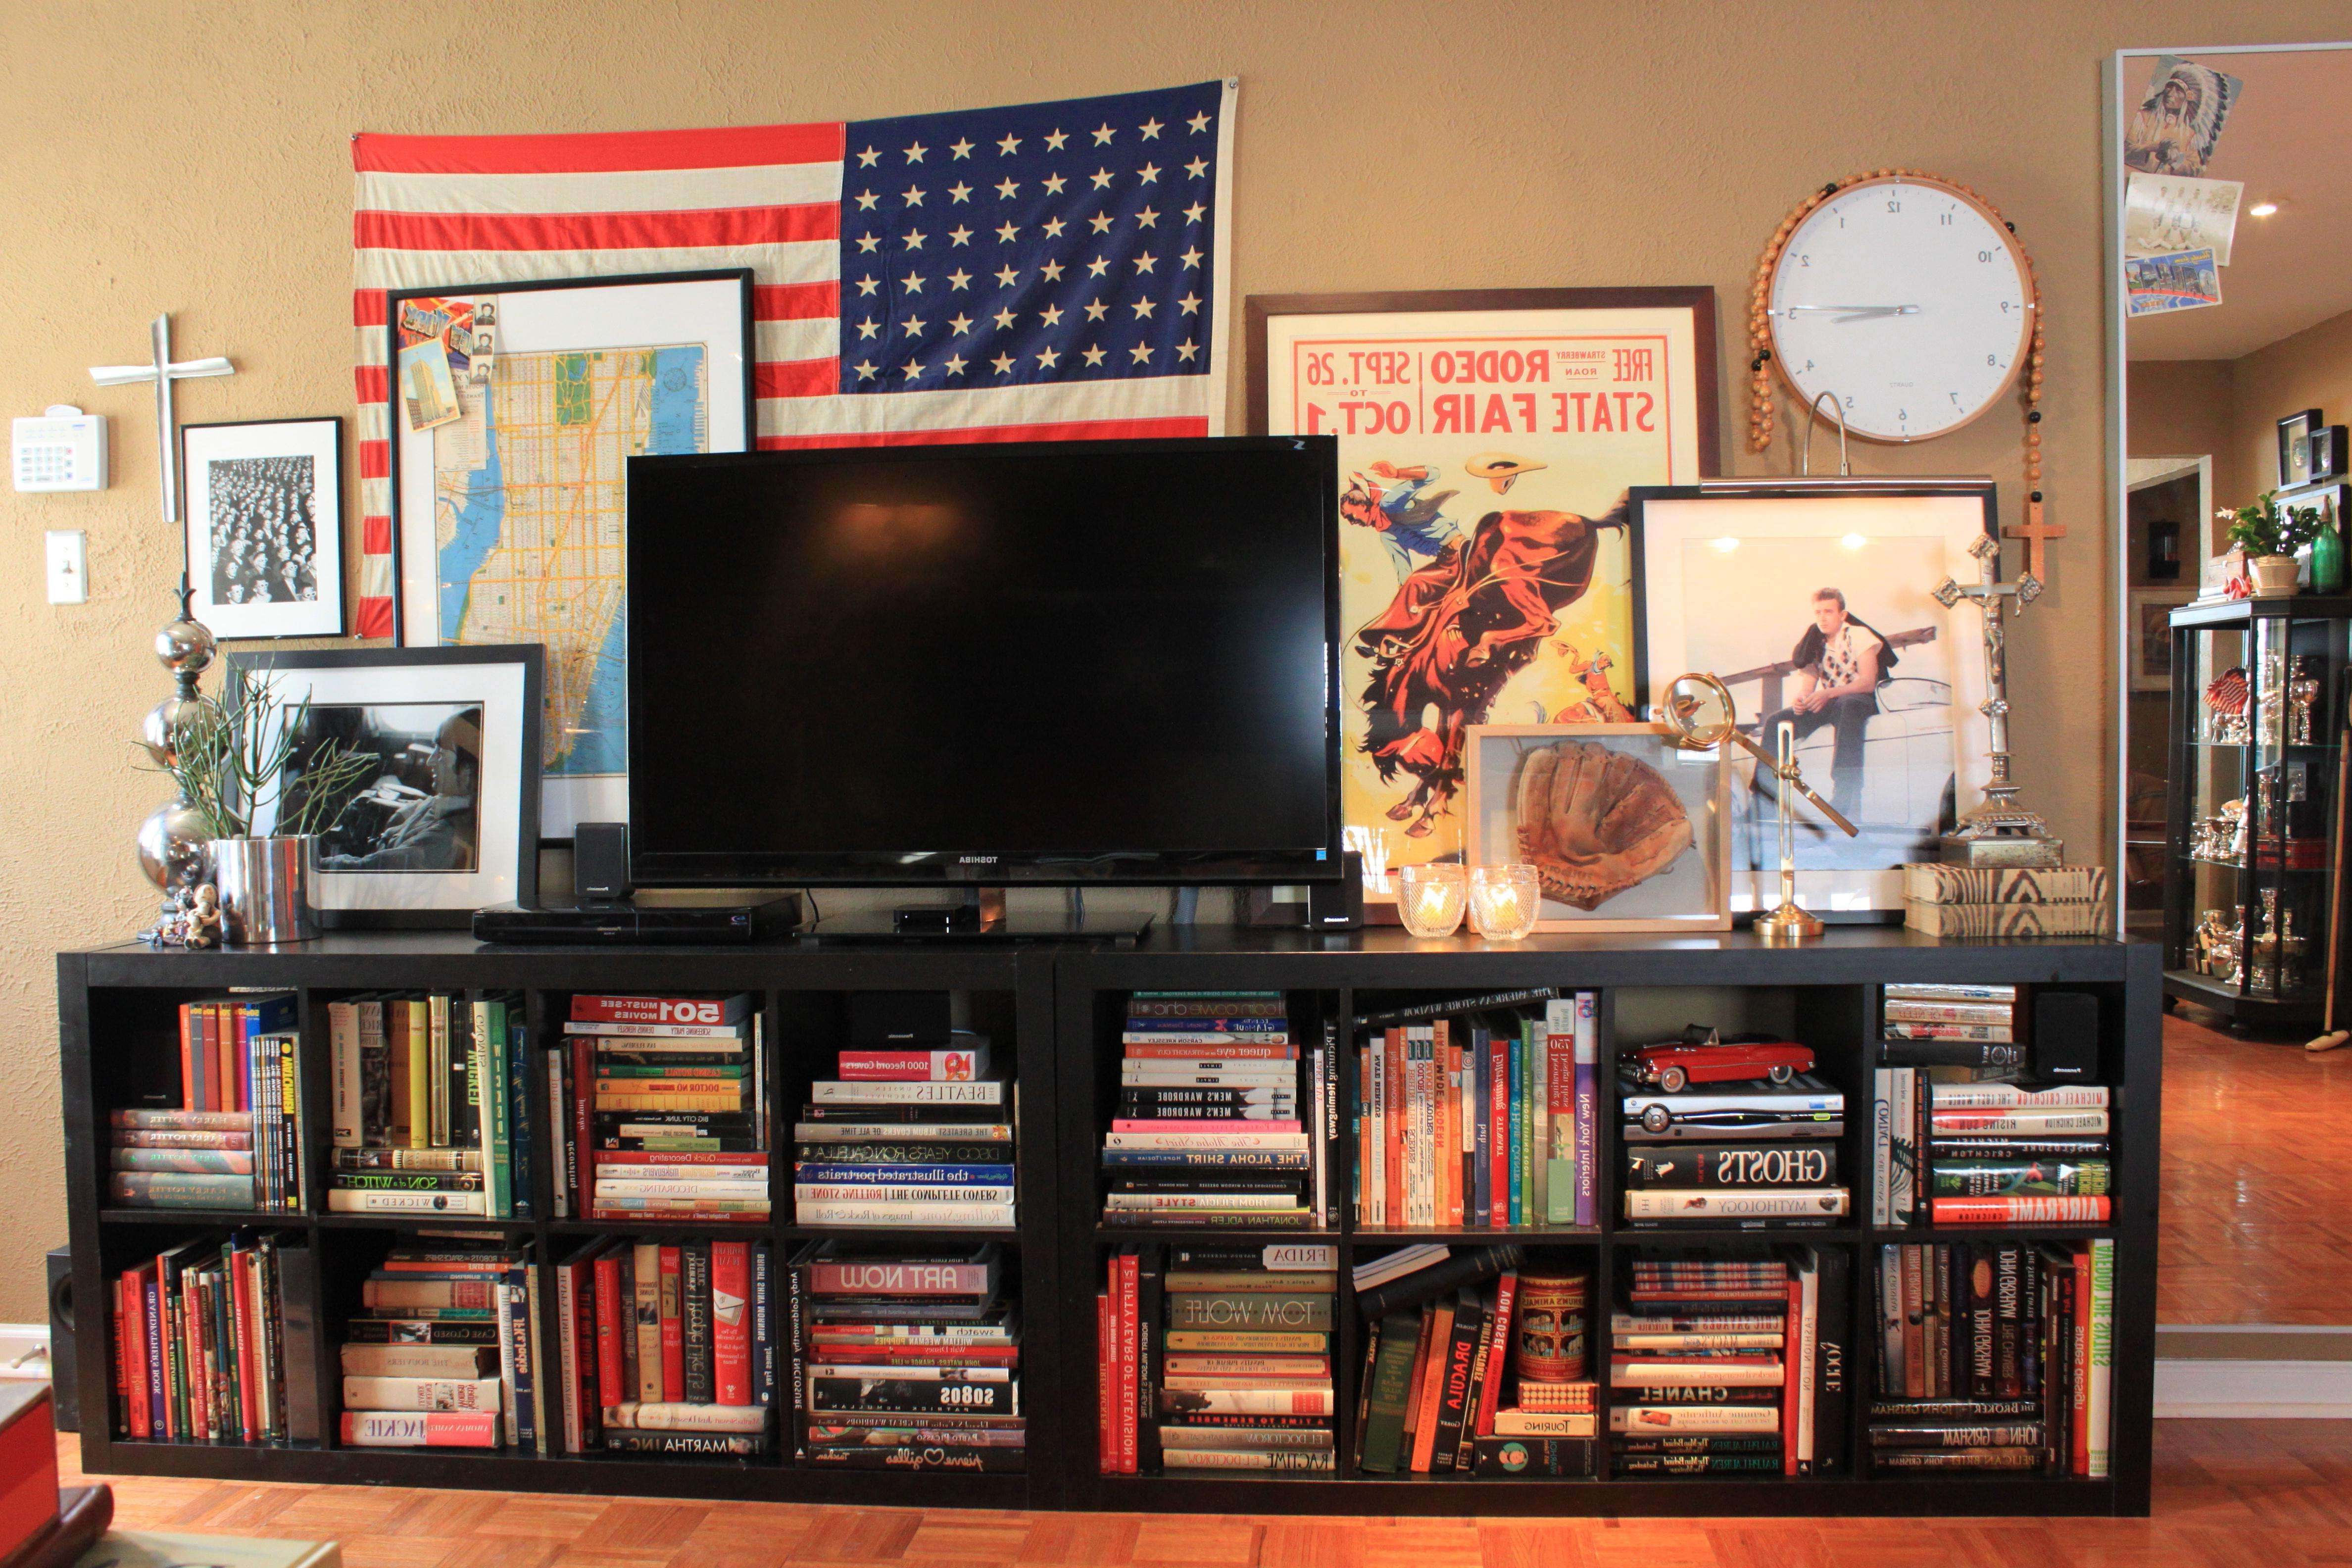 Overwhelming Extend Ikea Bookcases Design Featuring Long Lines Intended For Bookshelf And Tv Stands (View 8 of 15)